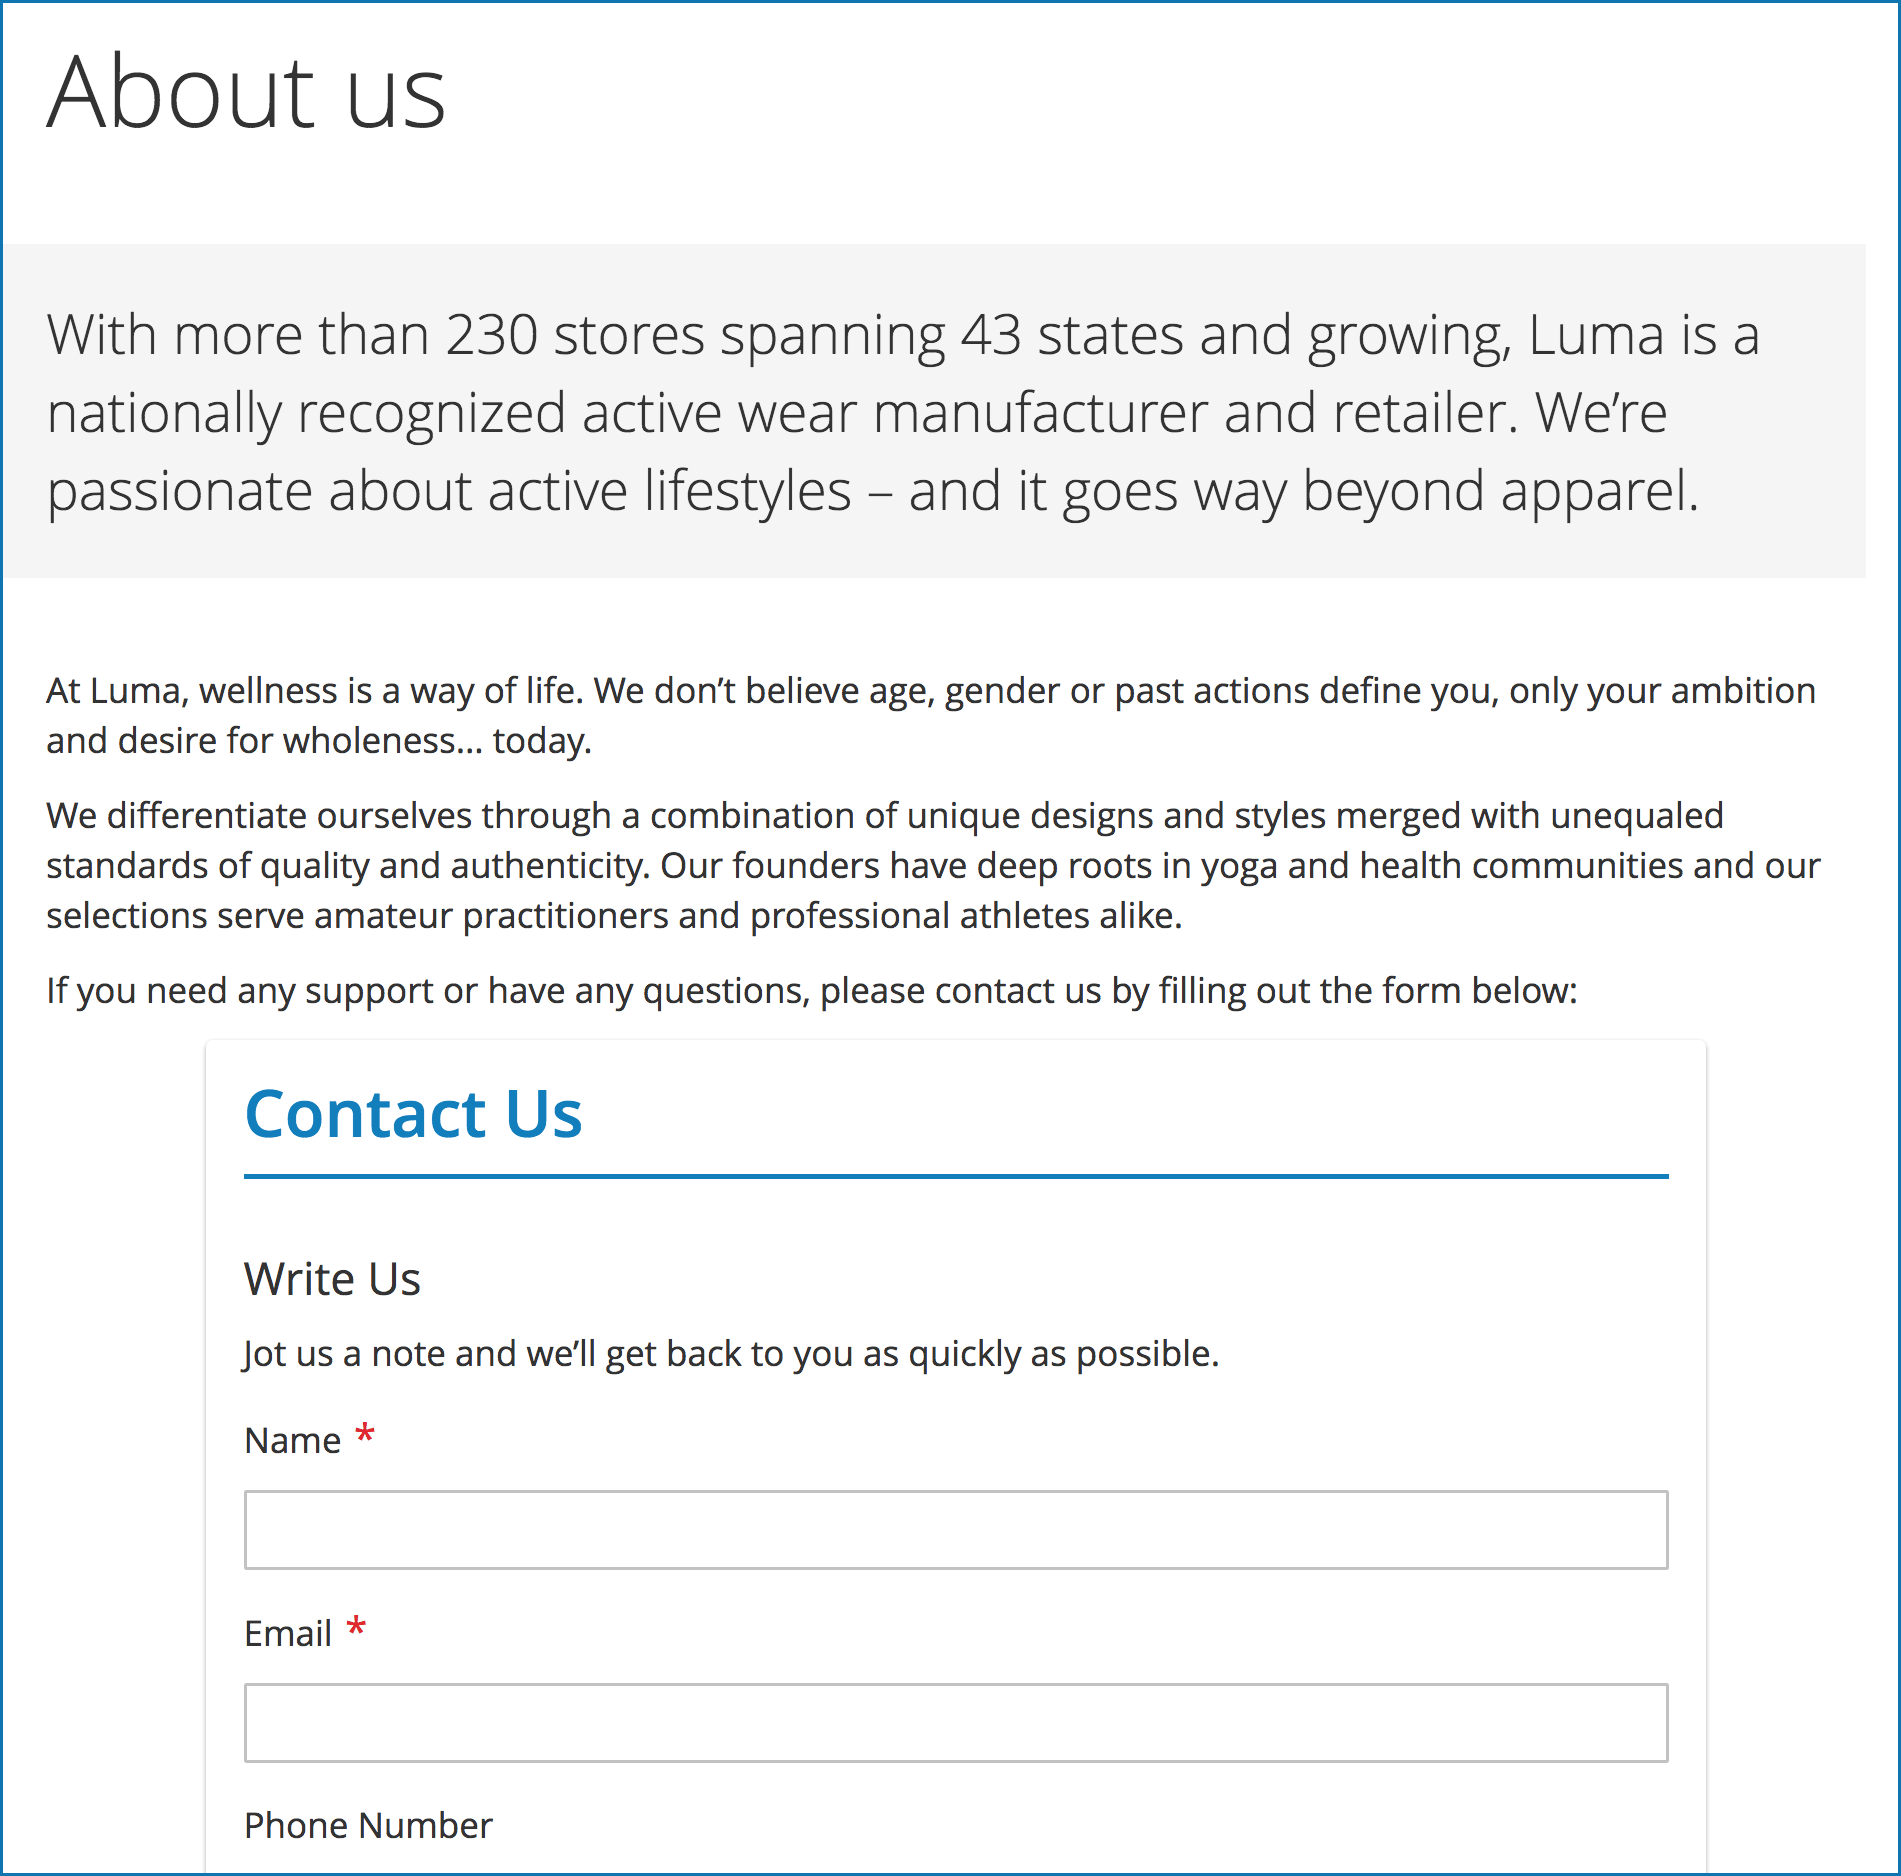 Embedded forms using embed code